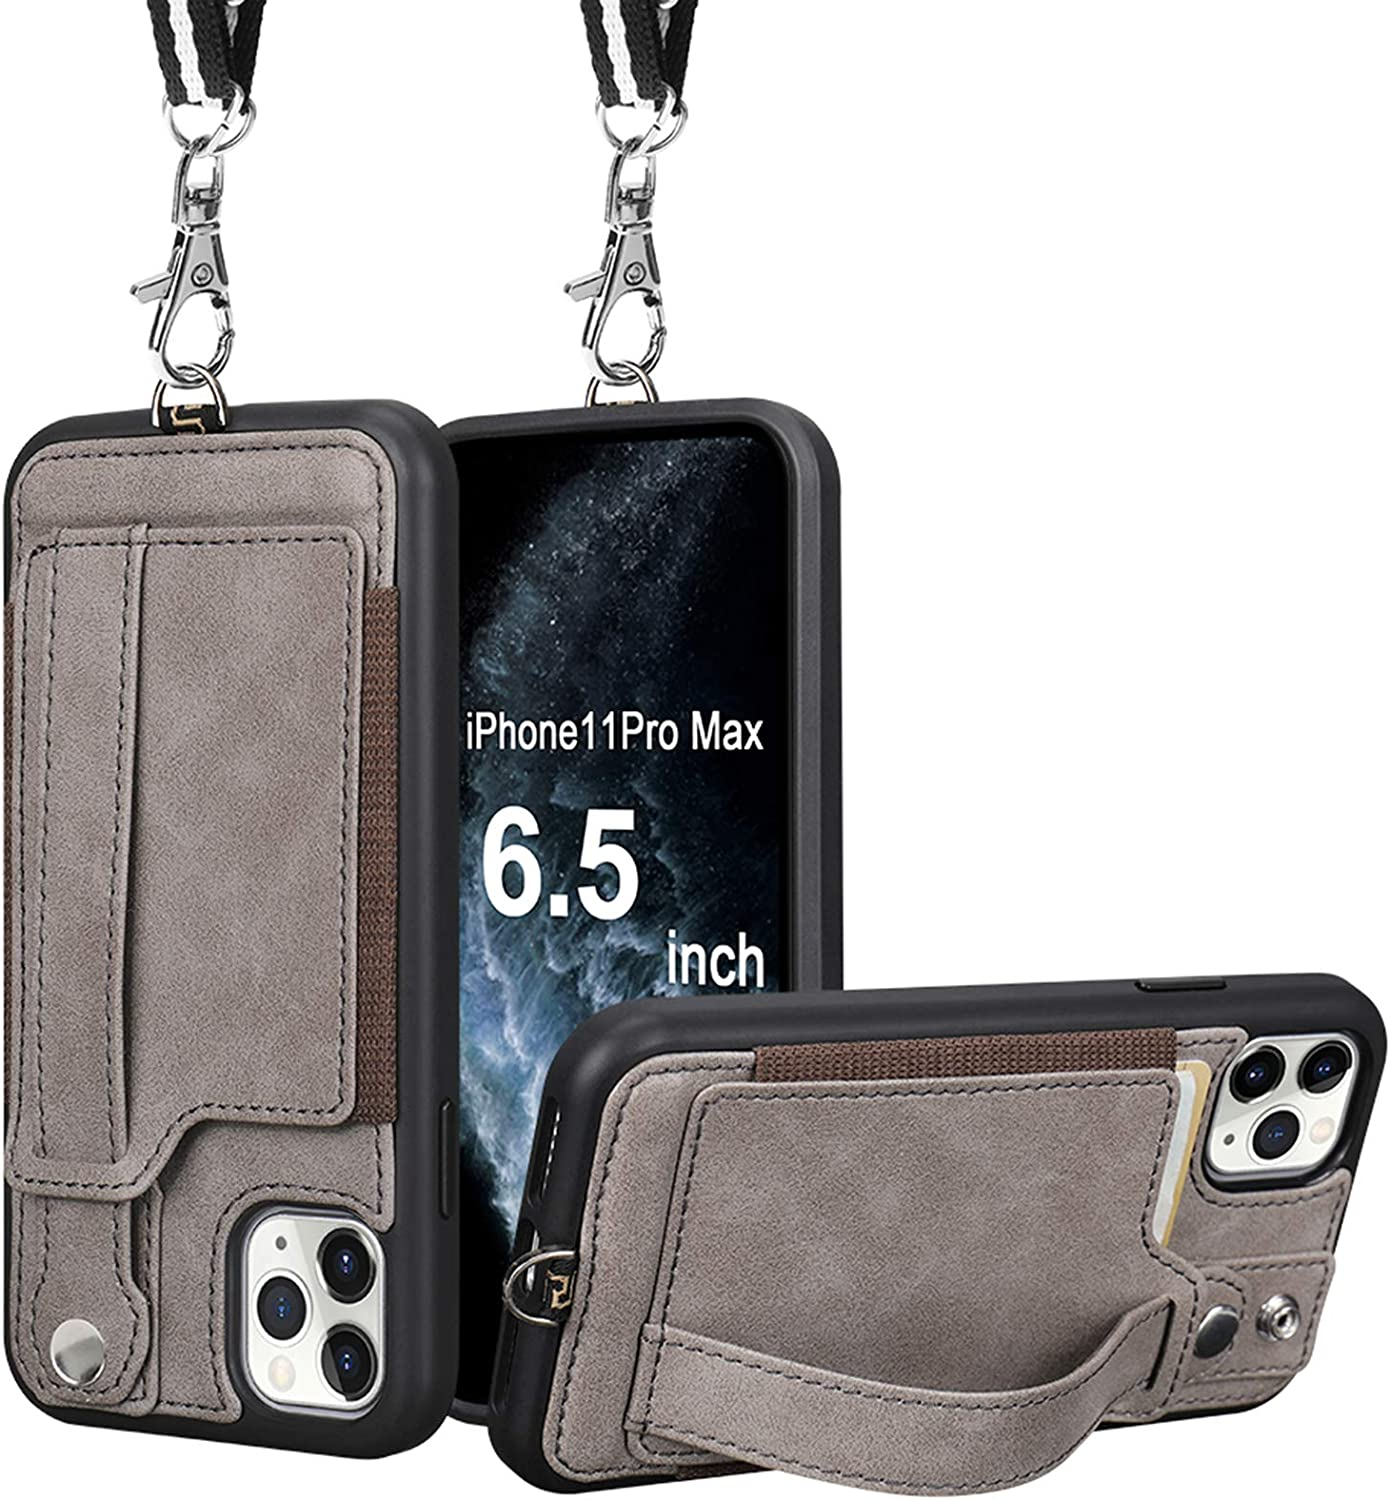 iPhone 11 Pro Max Wallet Case, TOOVREN iPhone 11 Pro Max Case Protective Cover with Leather PU Card Holder Adjustable Detachable iPhone Lanyard Stand Strap for iPhone 11 Pro Max 6.5 Inch 2019 Gray